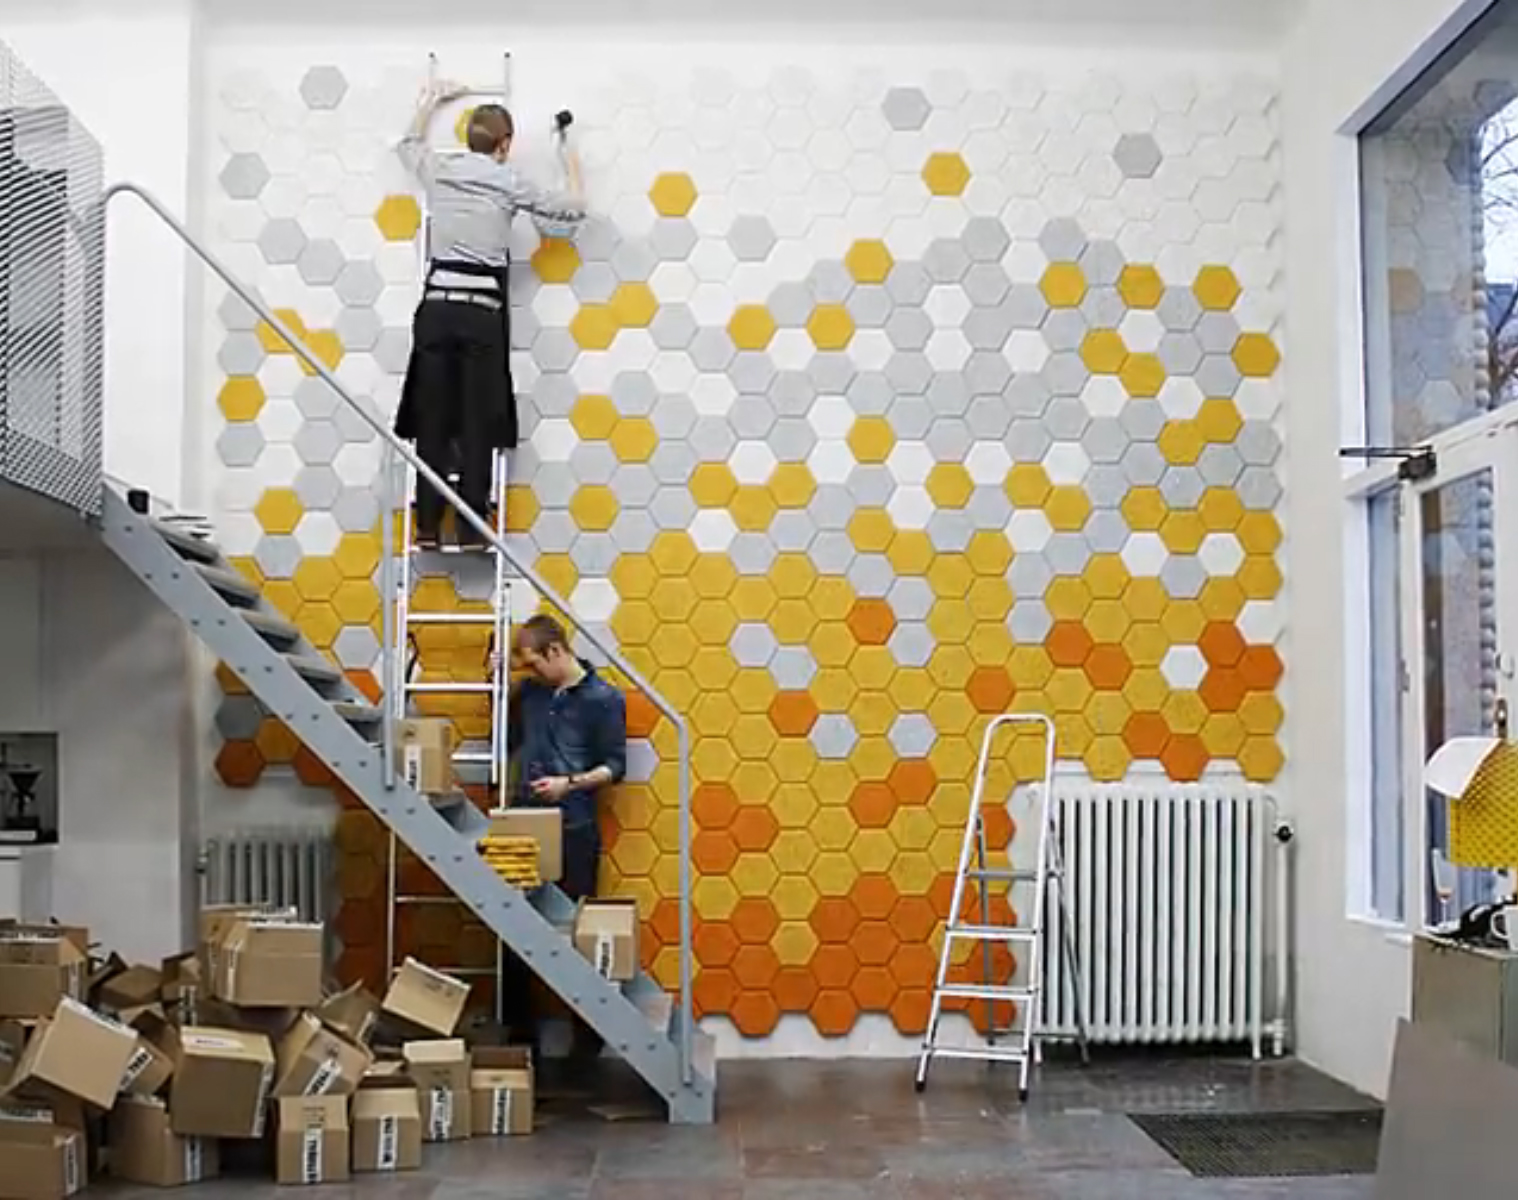 Acoustic Panels Distracted By Design